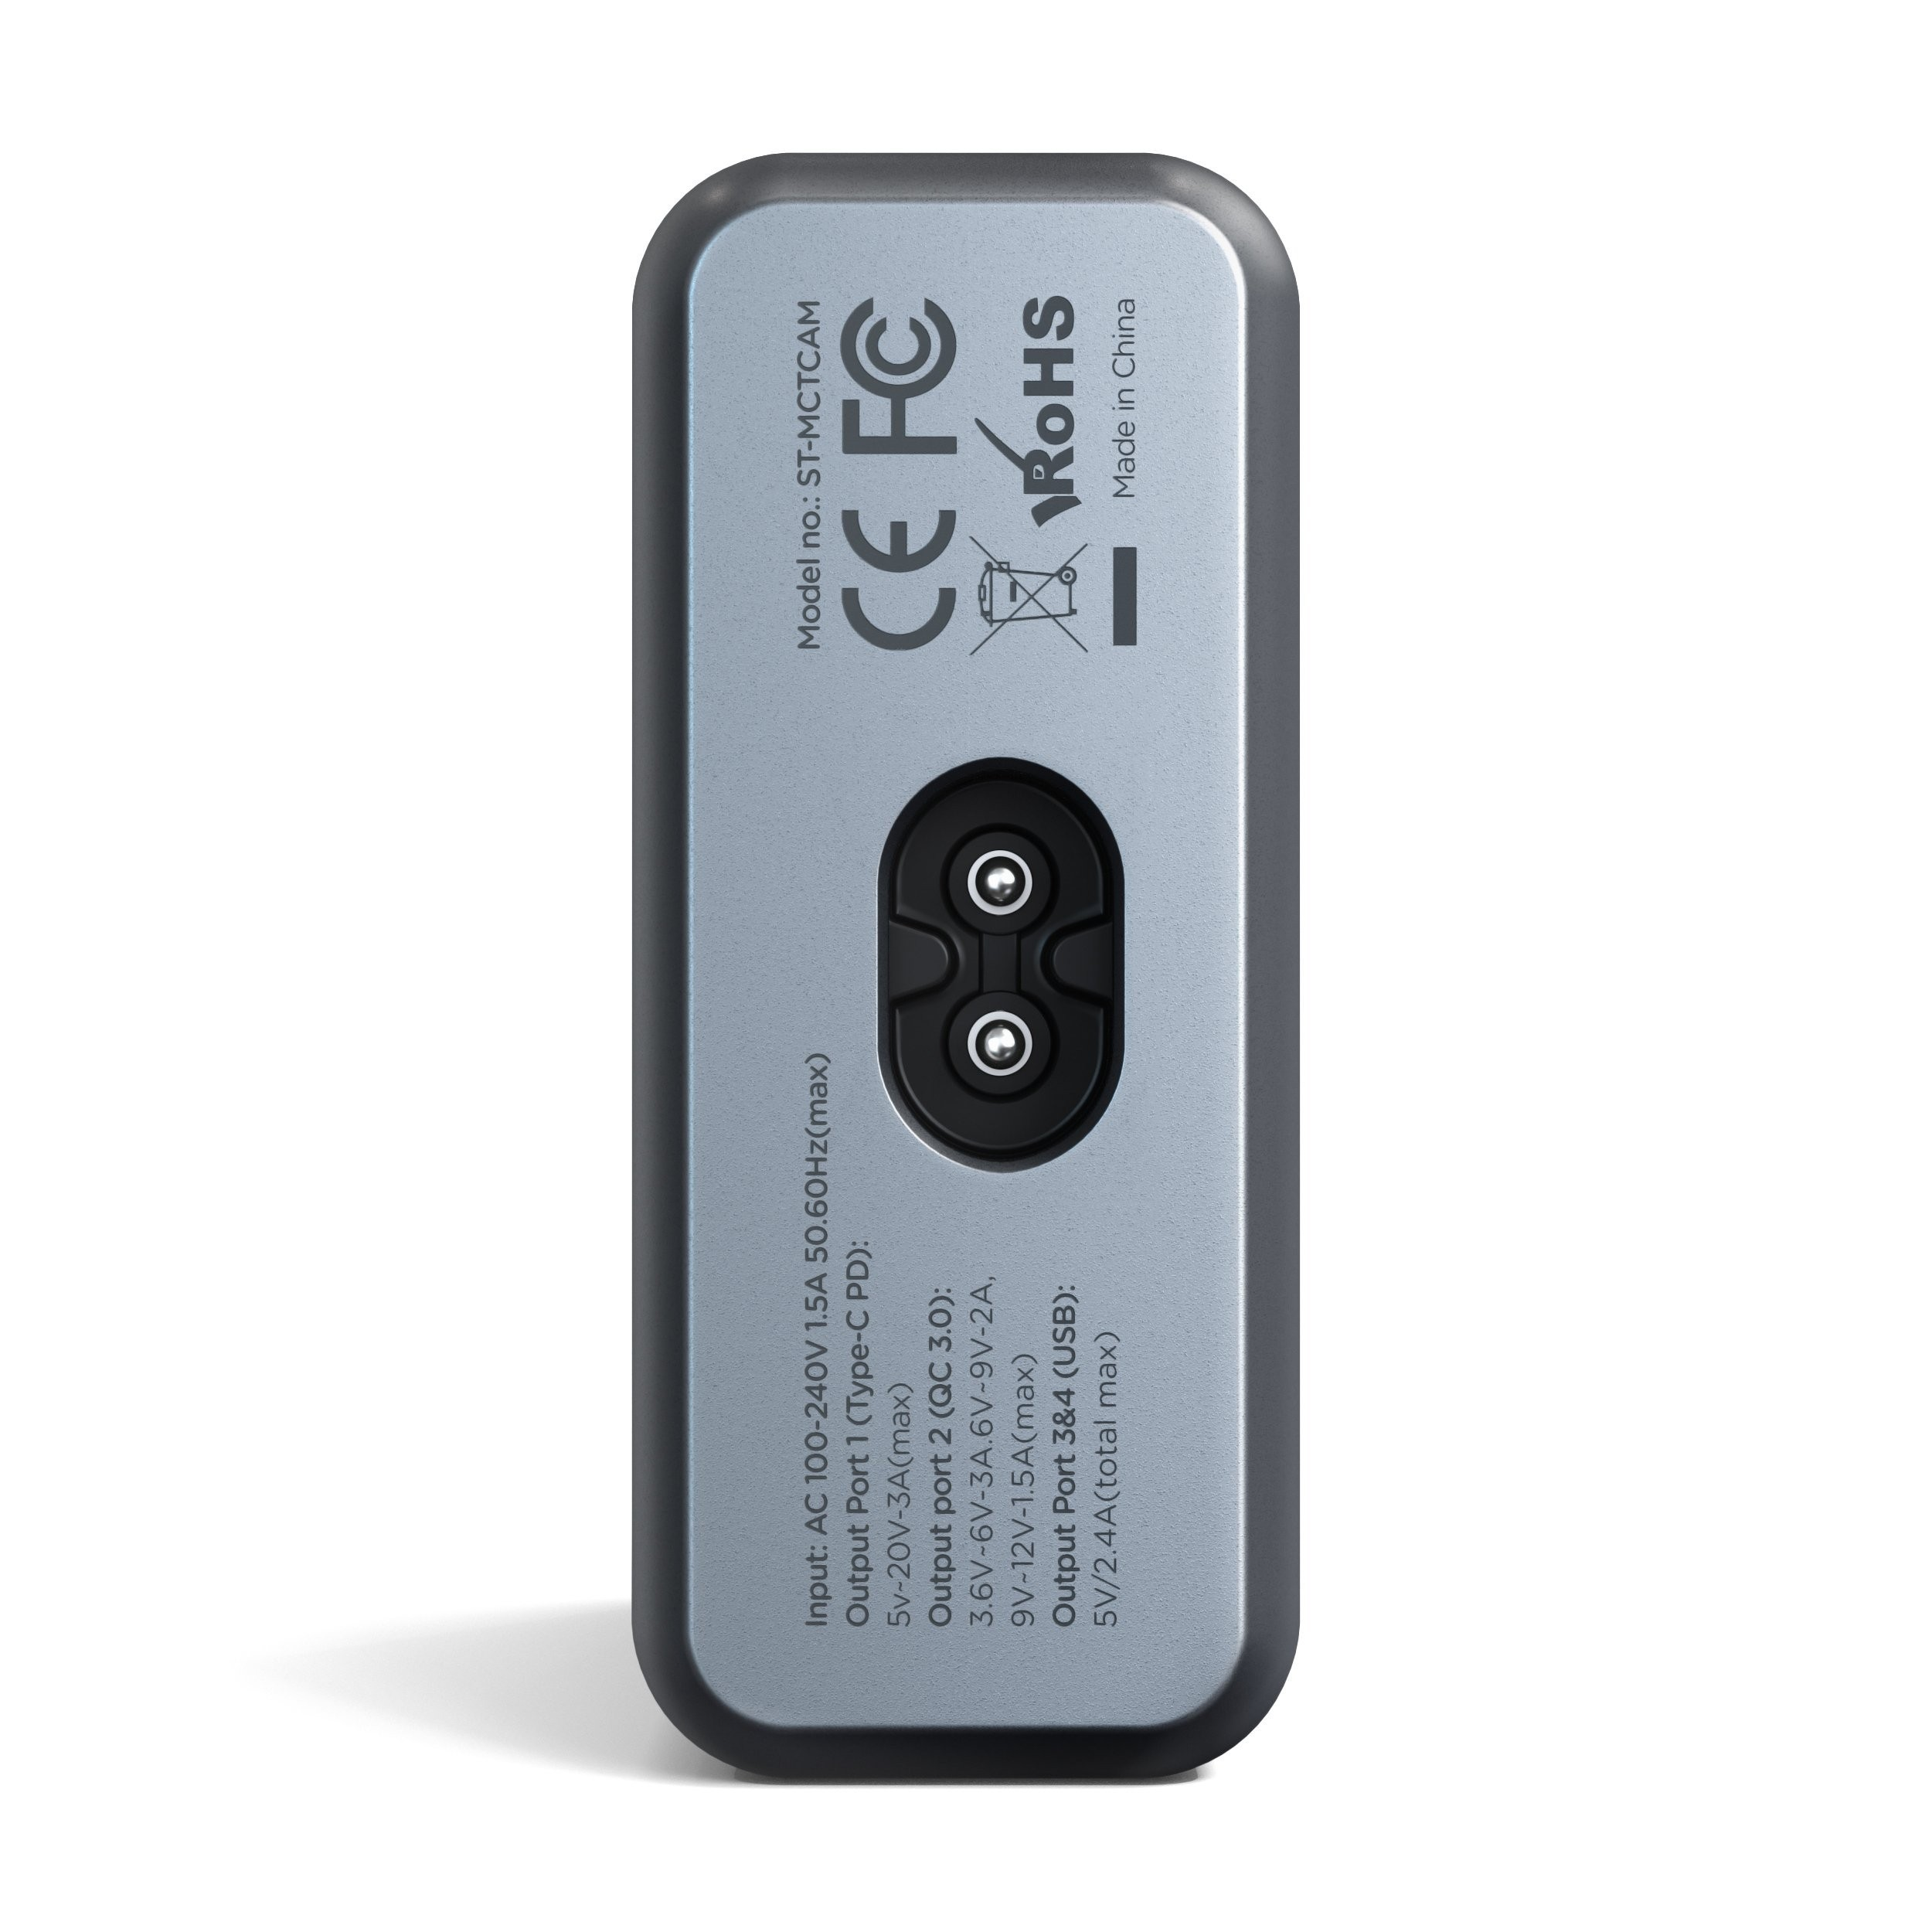 Satechi 75W MultiPort Travel Charger, ST-MCTCAM-AUK